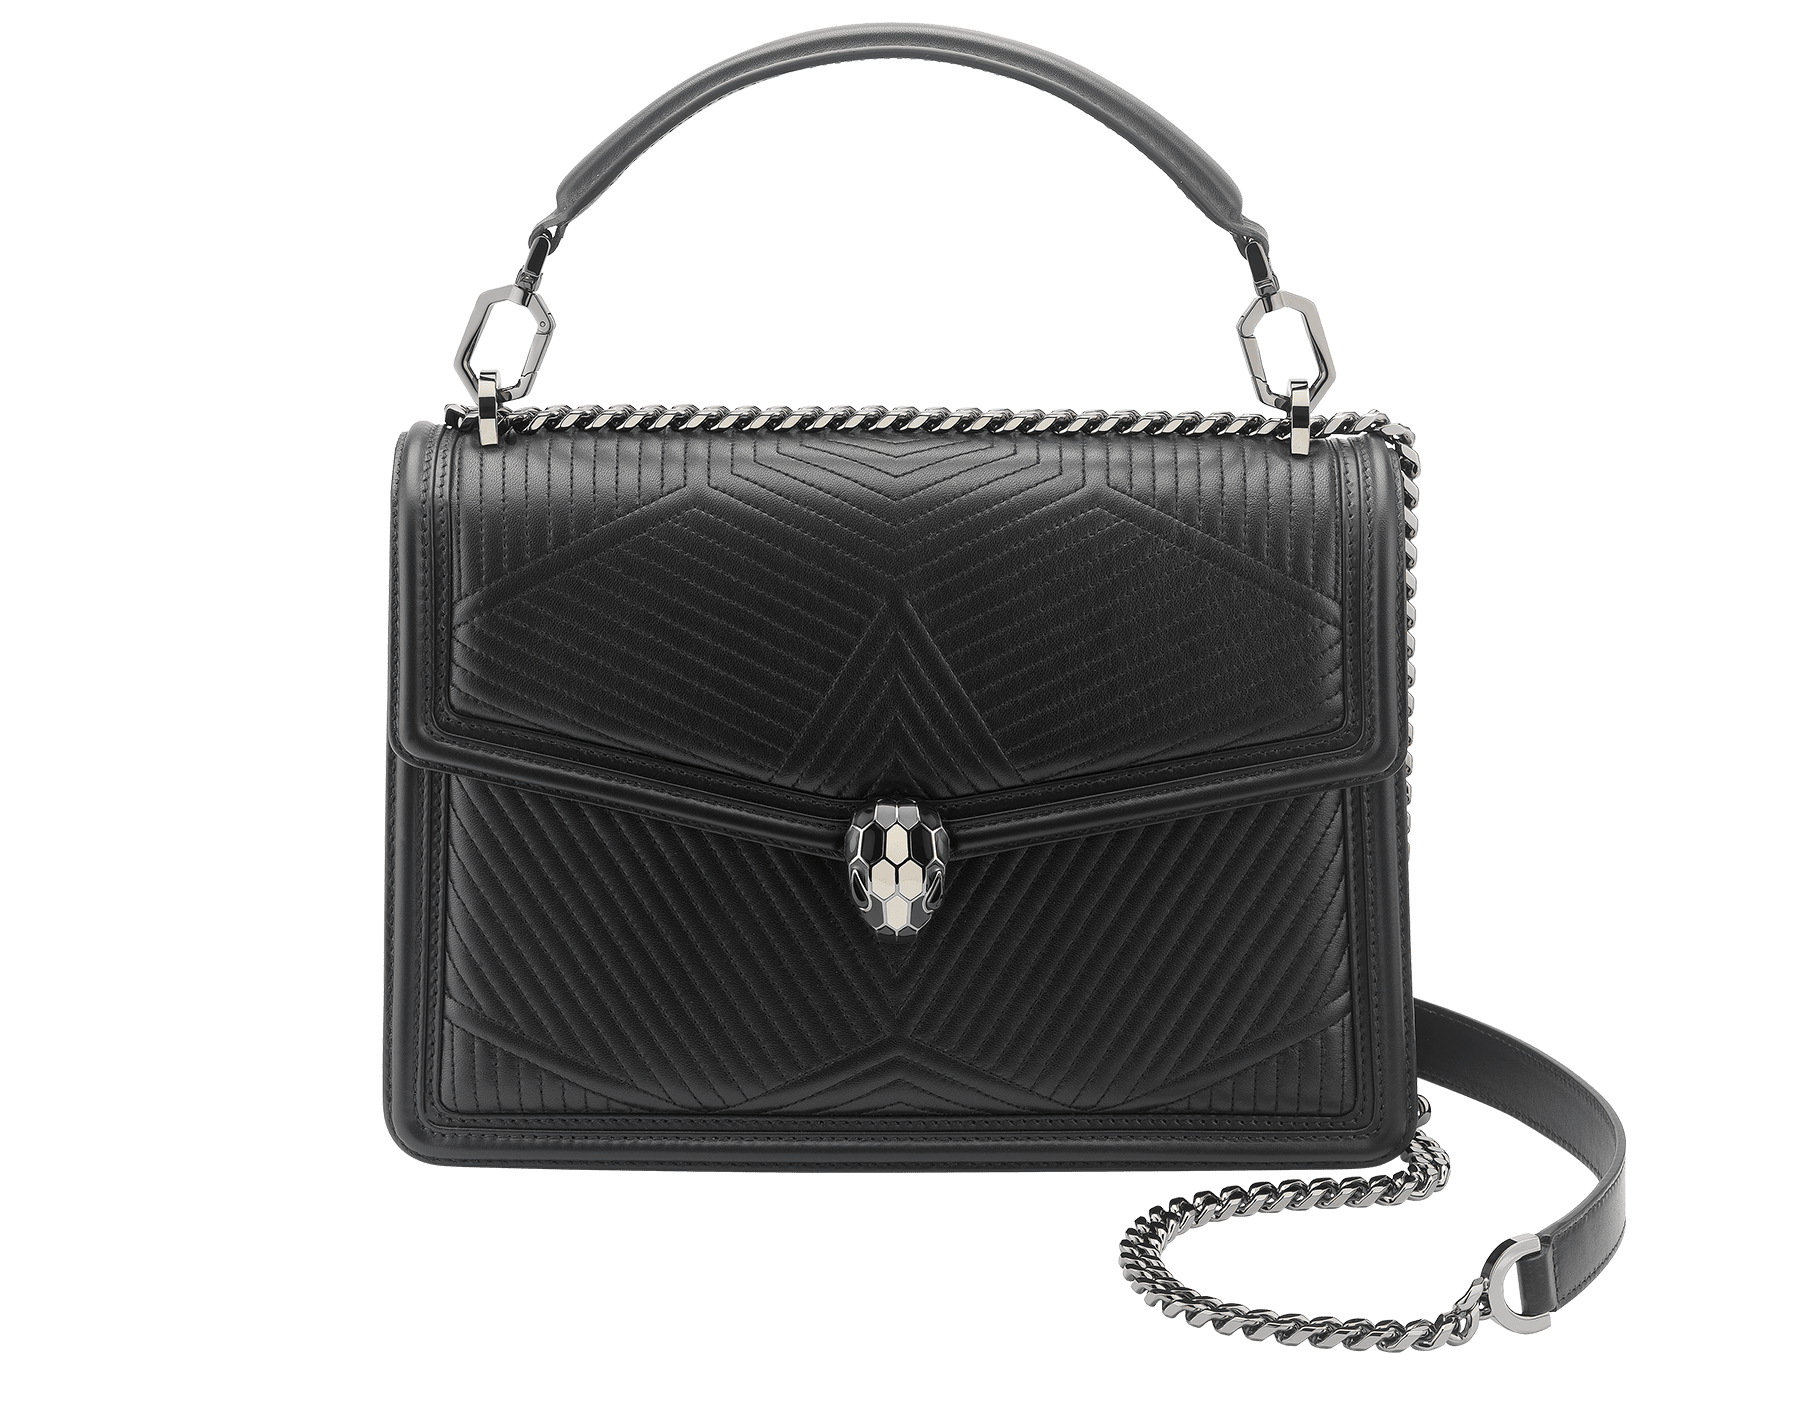 """Serpenti Diamond Blast"" shoulder bag in black quilted nappa leather body and black calf leather frames. Iconic snakehead closure in dark ruthenium plated brass enriched with black and white enamel and black onyx eyes. 287360 image 1"